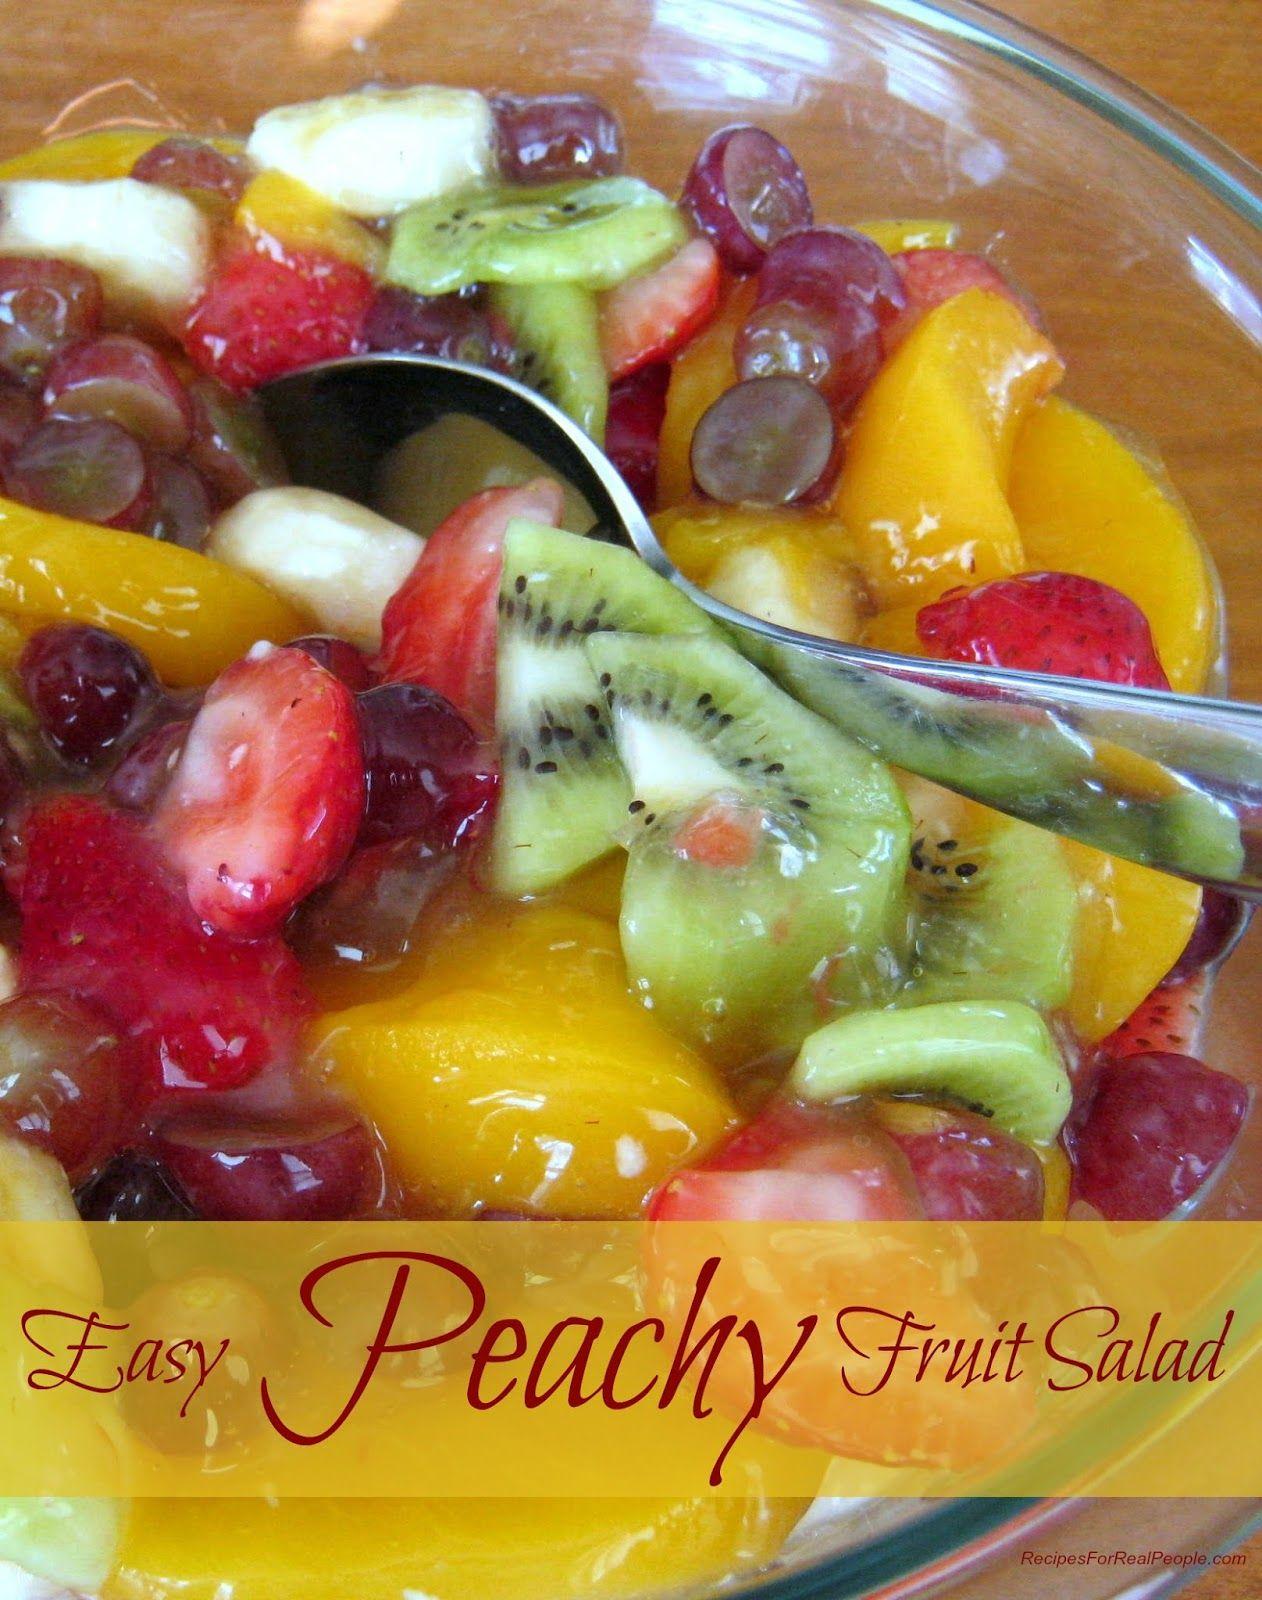 Fruit Salad With Peach Pie Filling Easy Peachy Fruit